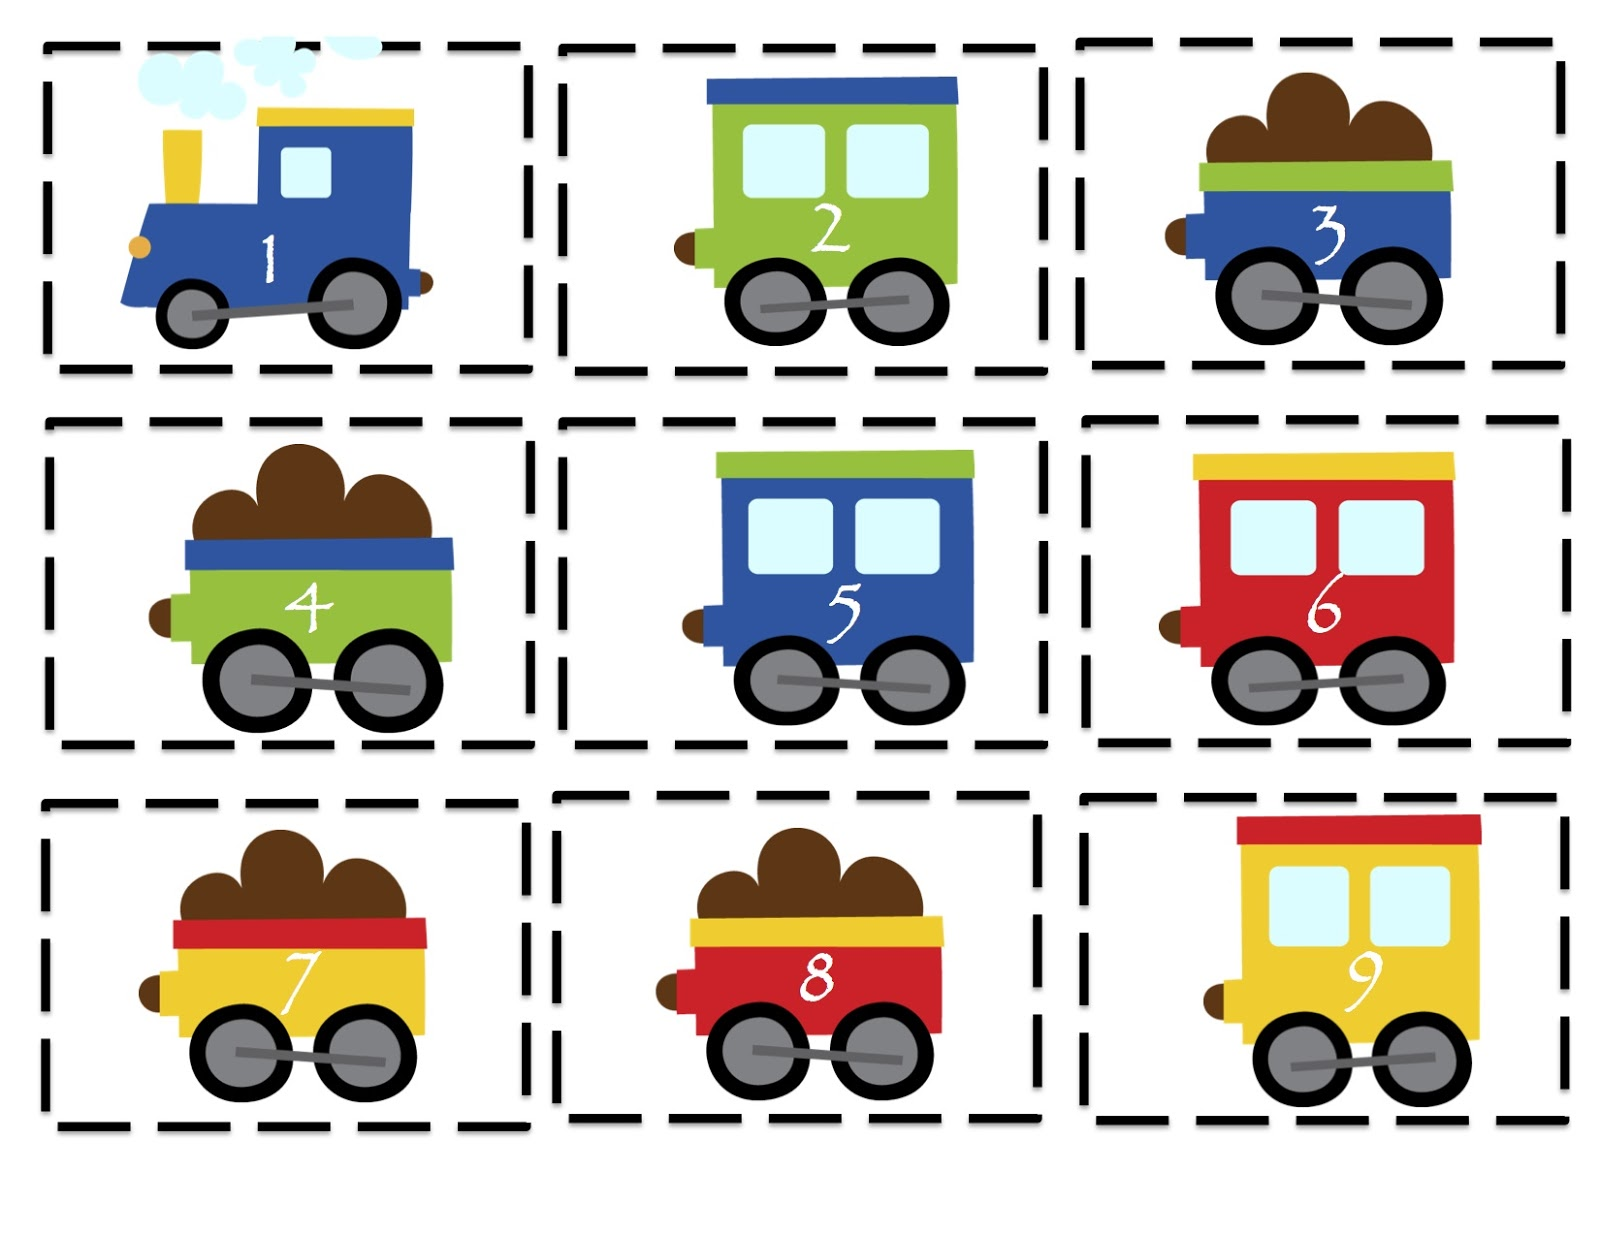 photograph regarding Printable Train Pictures titled Coach Ticket Template Clipart Absolutely free obtain simplest Coach